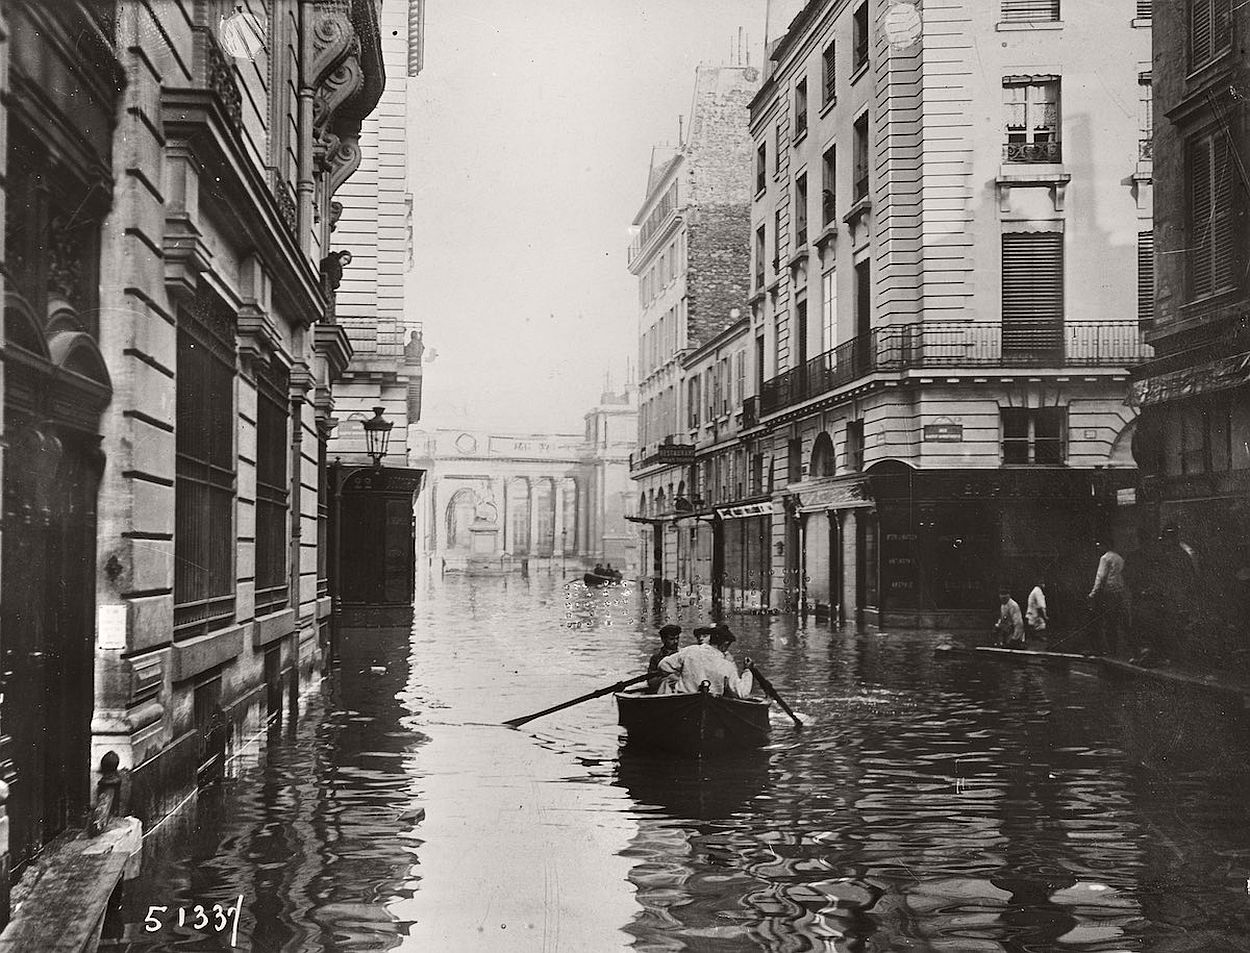 paris-underwater-great-flood-1910-06